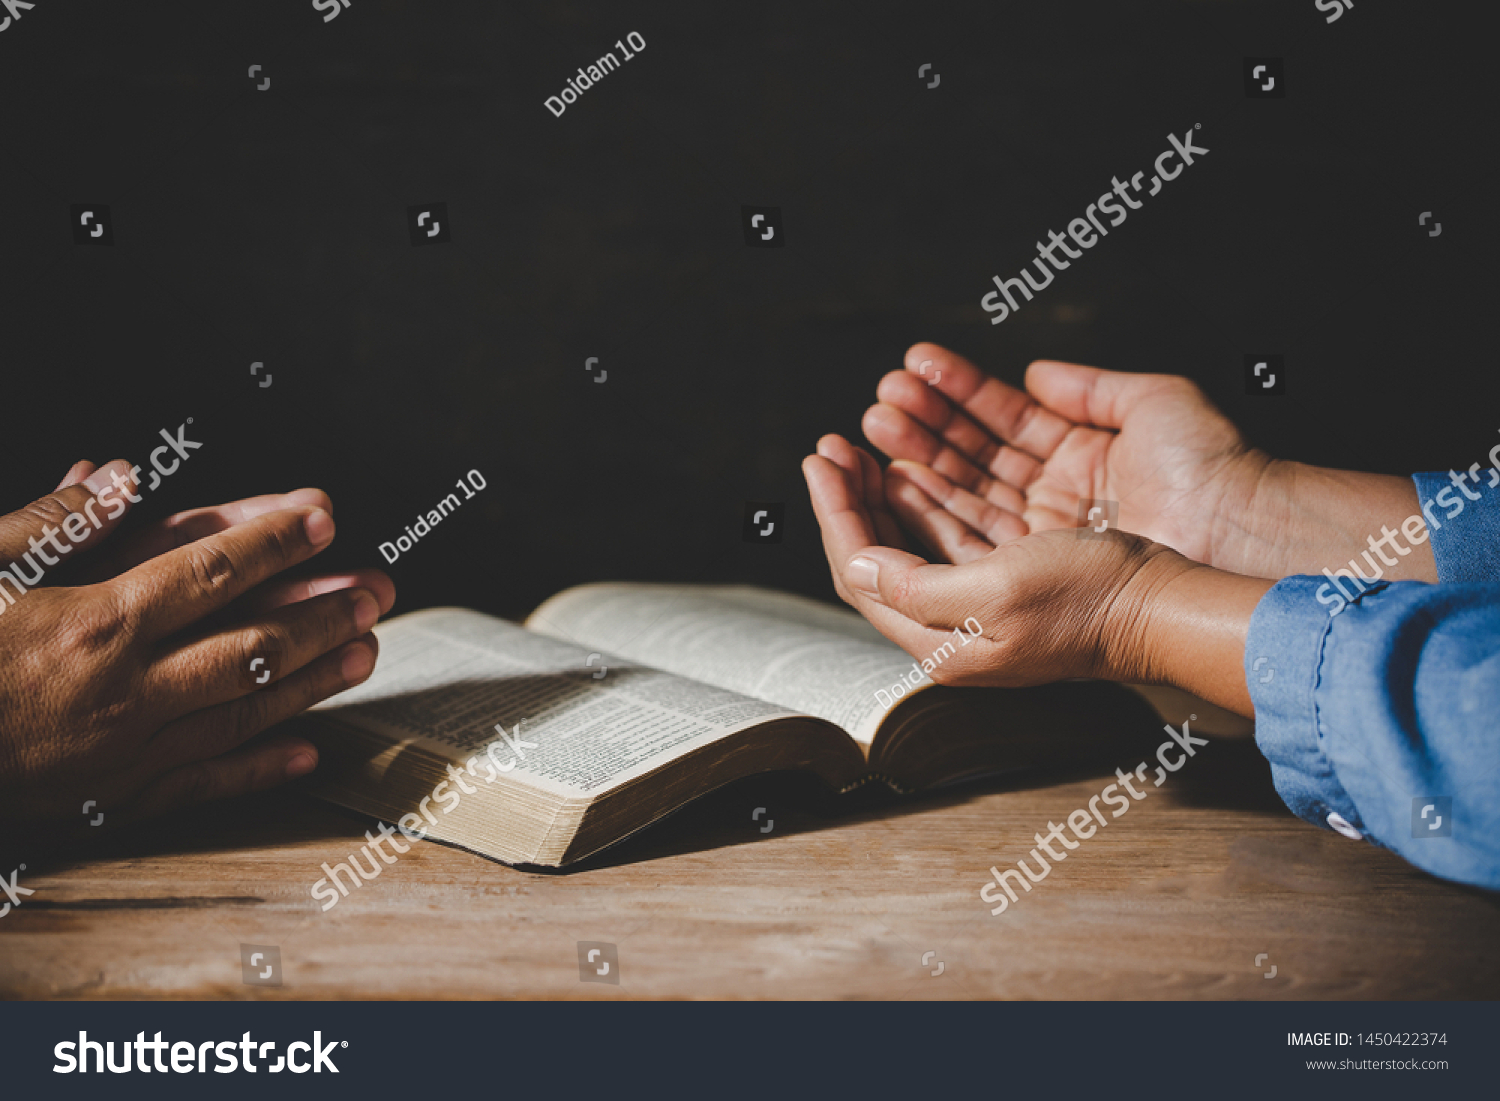 Group of people holding hands praying worship believe, devotional for prayer meeting concept #1450422374